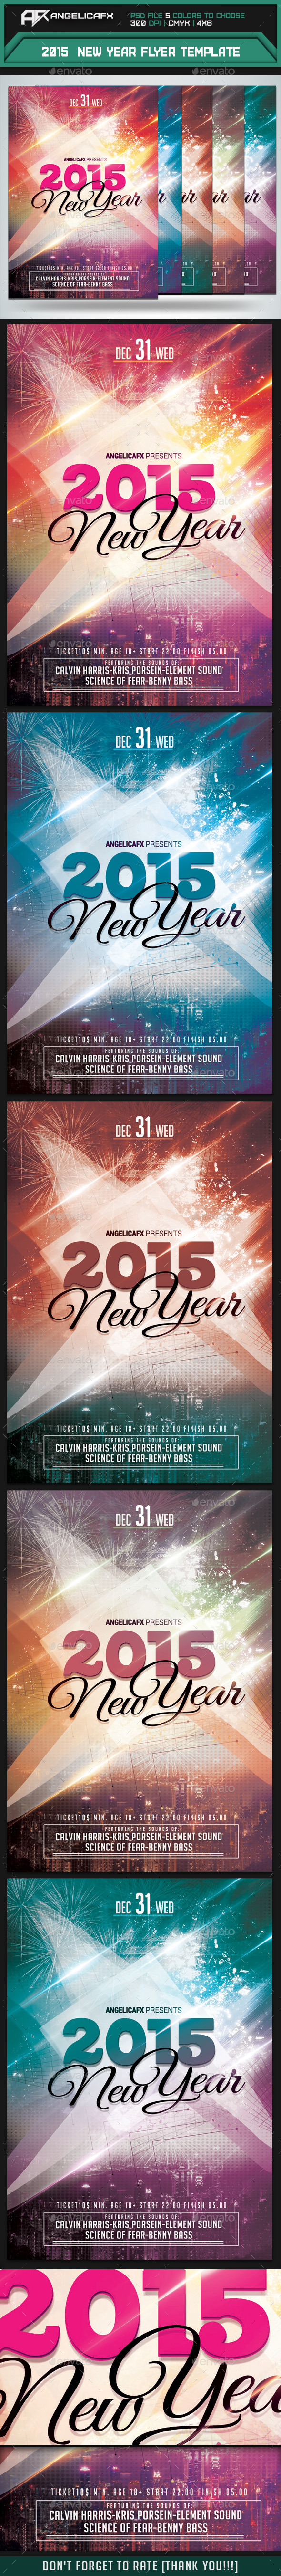 2015 New Year Flyer Template - Flyers Print Templates